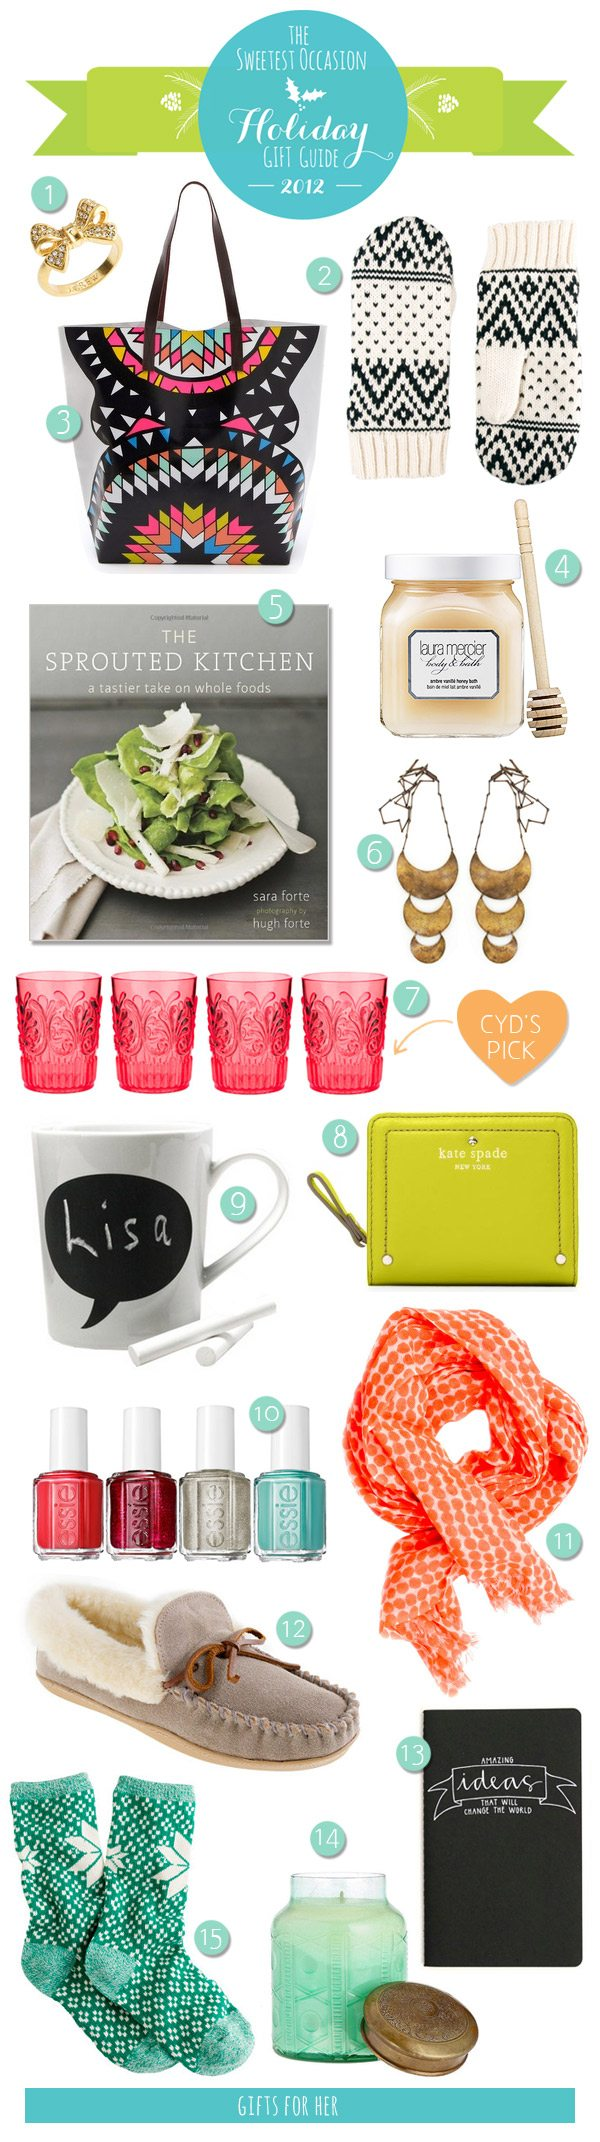 The Gift Guide: Gifts for Her | The Sweetest Occasion